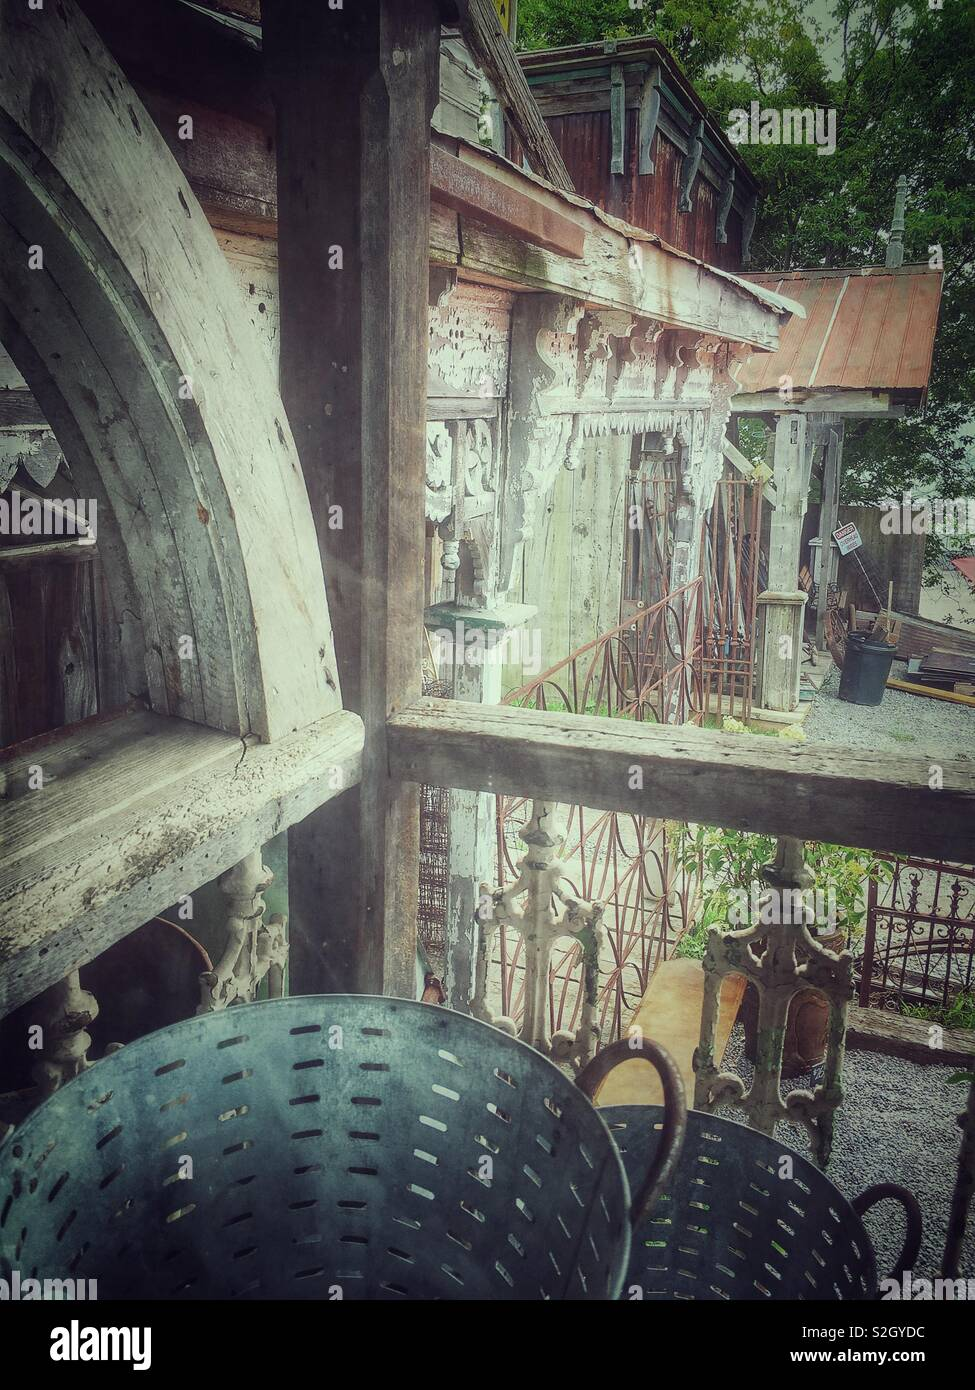 Vintage architectural finds, rustic yesteryear feeling front porch - Stock Image